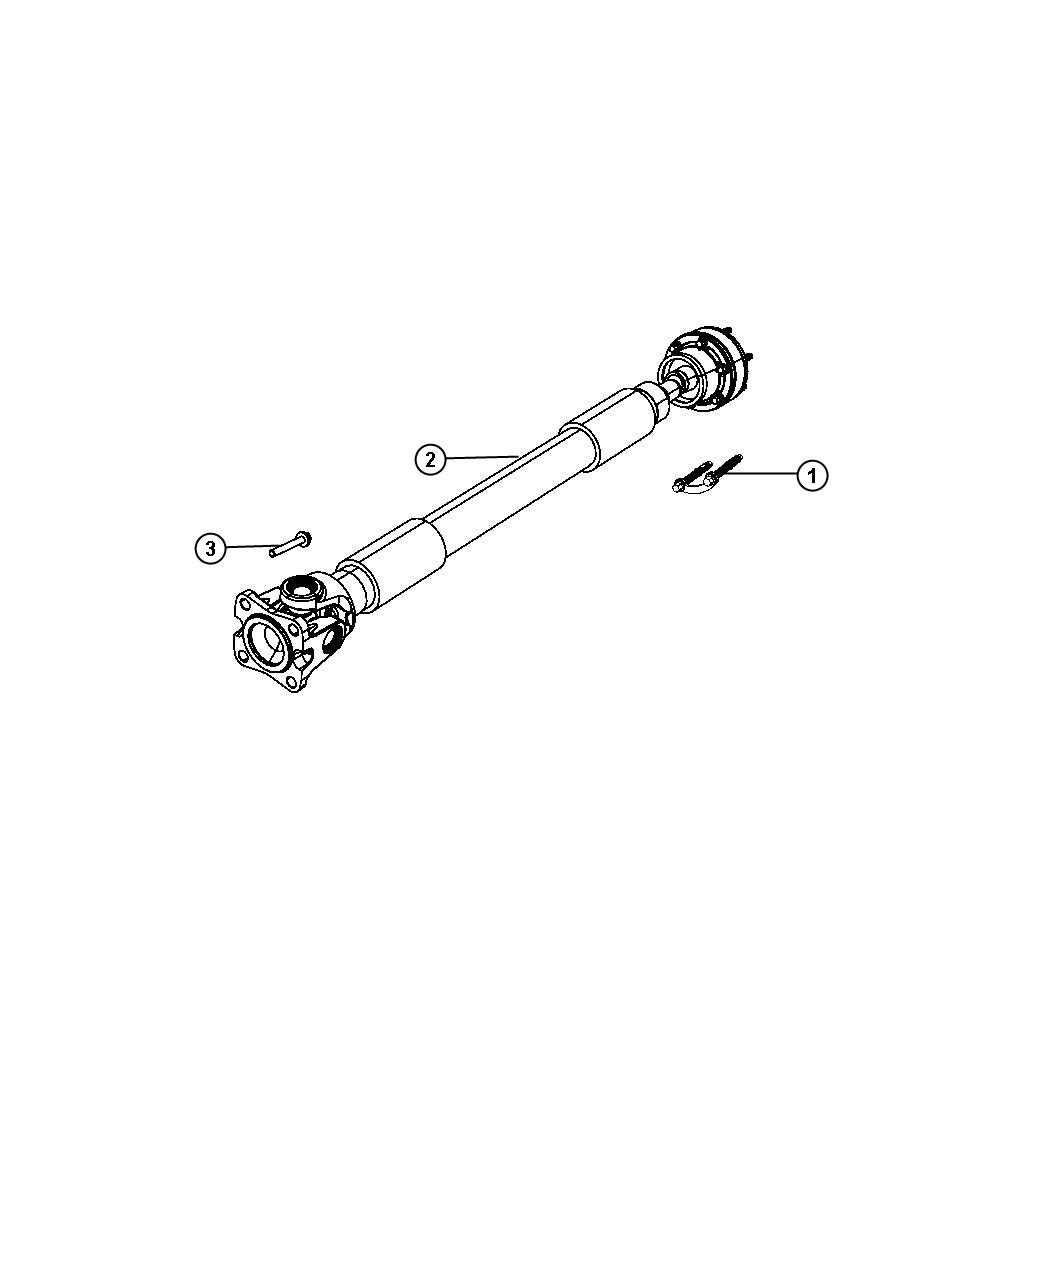 Jeep Liberty Used For  Bolt And Retainer Kit  Driveshaft